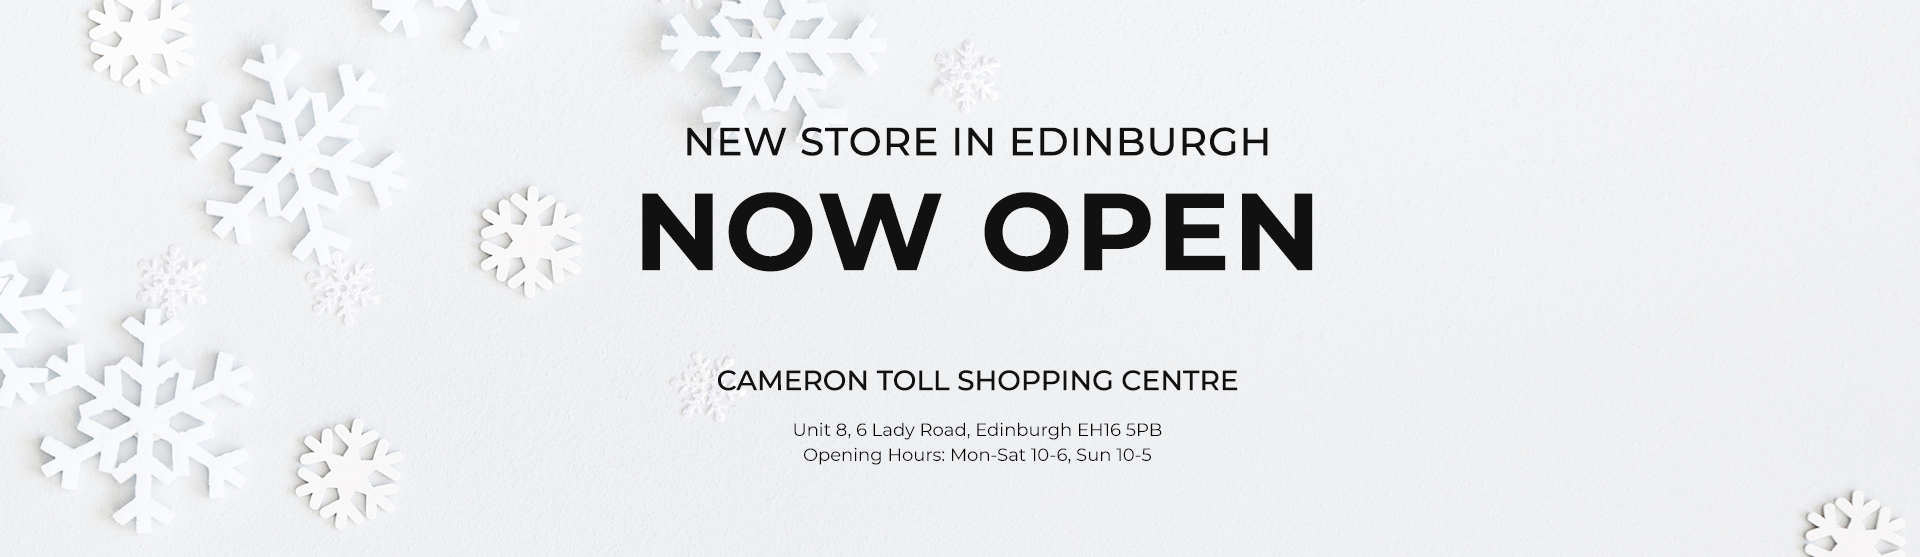 New 121 Shop open Now in Edinburgh